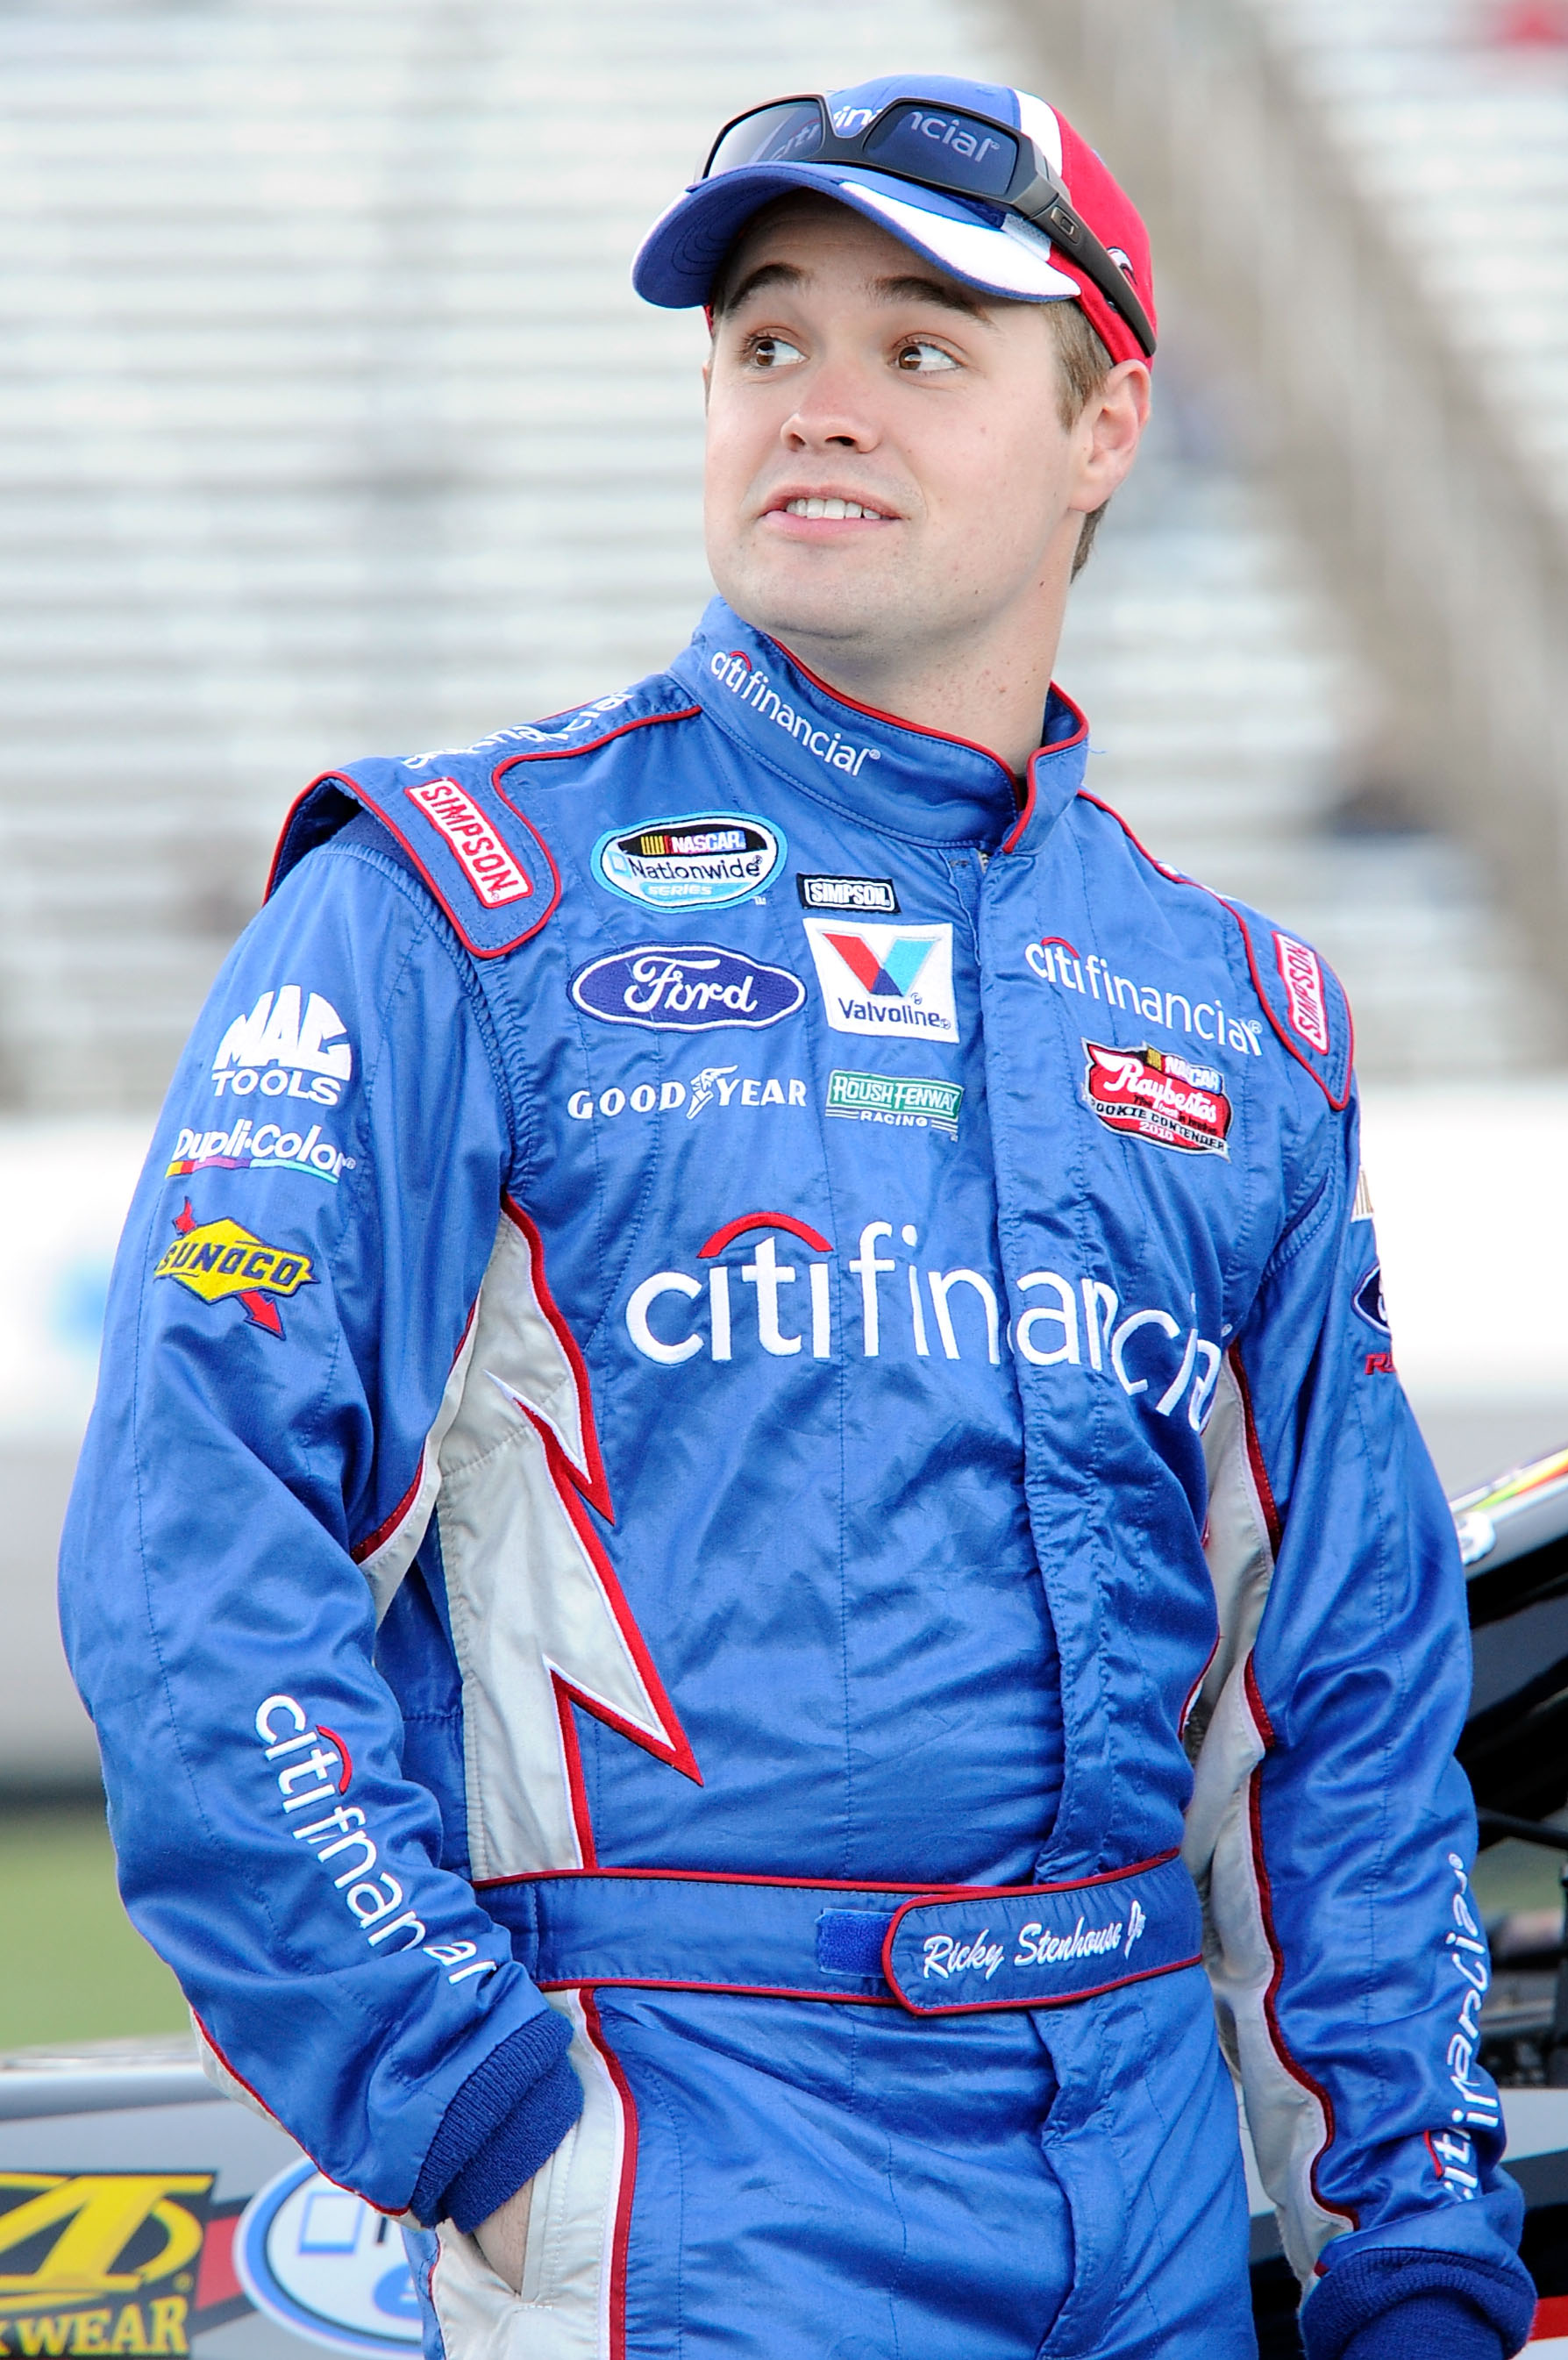 FORT WORTH, TX - NOVEMBER 05:  Ricky Stenhouse Jr., driver of the #6 CitiFinancial Ford, stands on the grid during qualifying for the NASCAR Nationwide Series O'Reilly Auto Parts Challenge at Texas Motor Speedway on November 5, 2010 in Fort Worth, Texas.